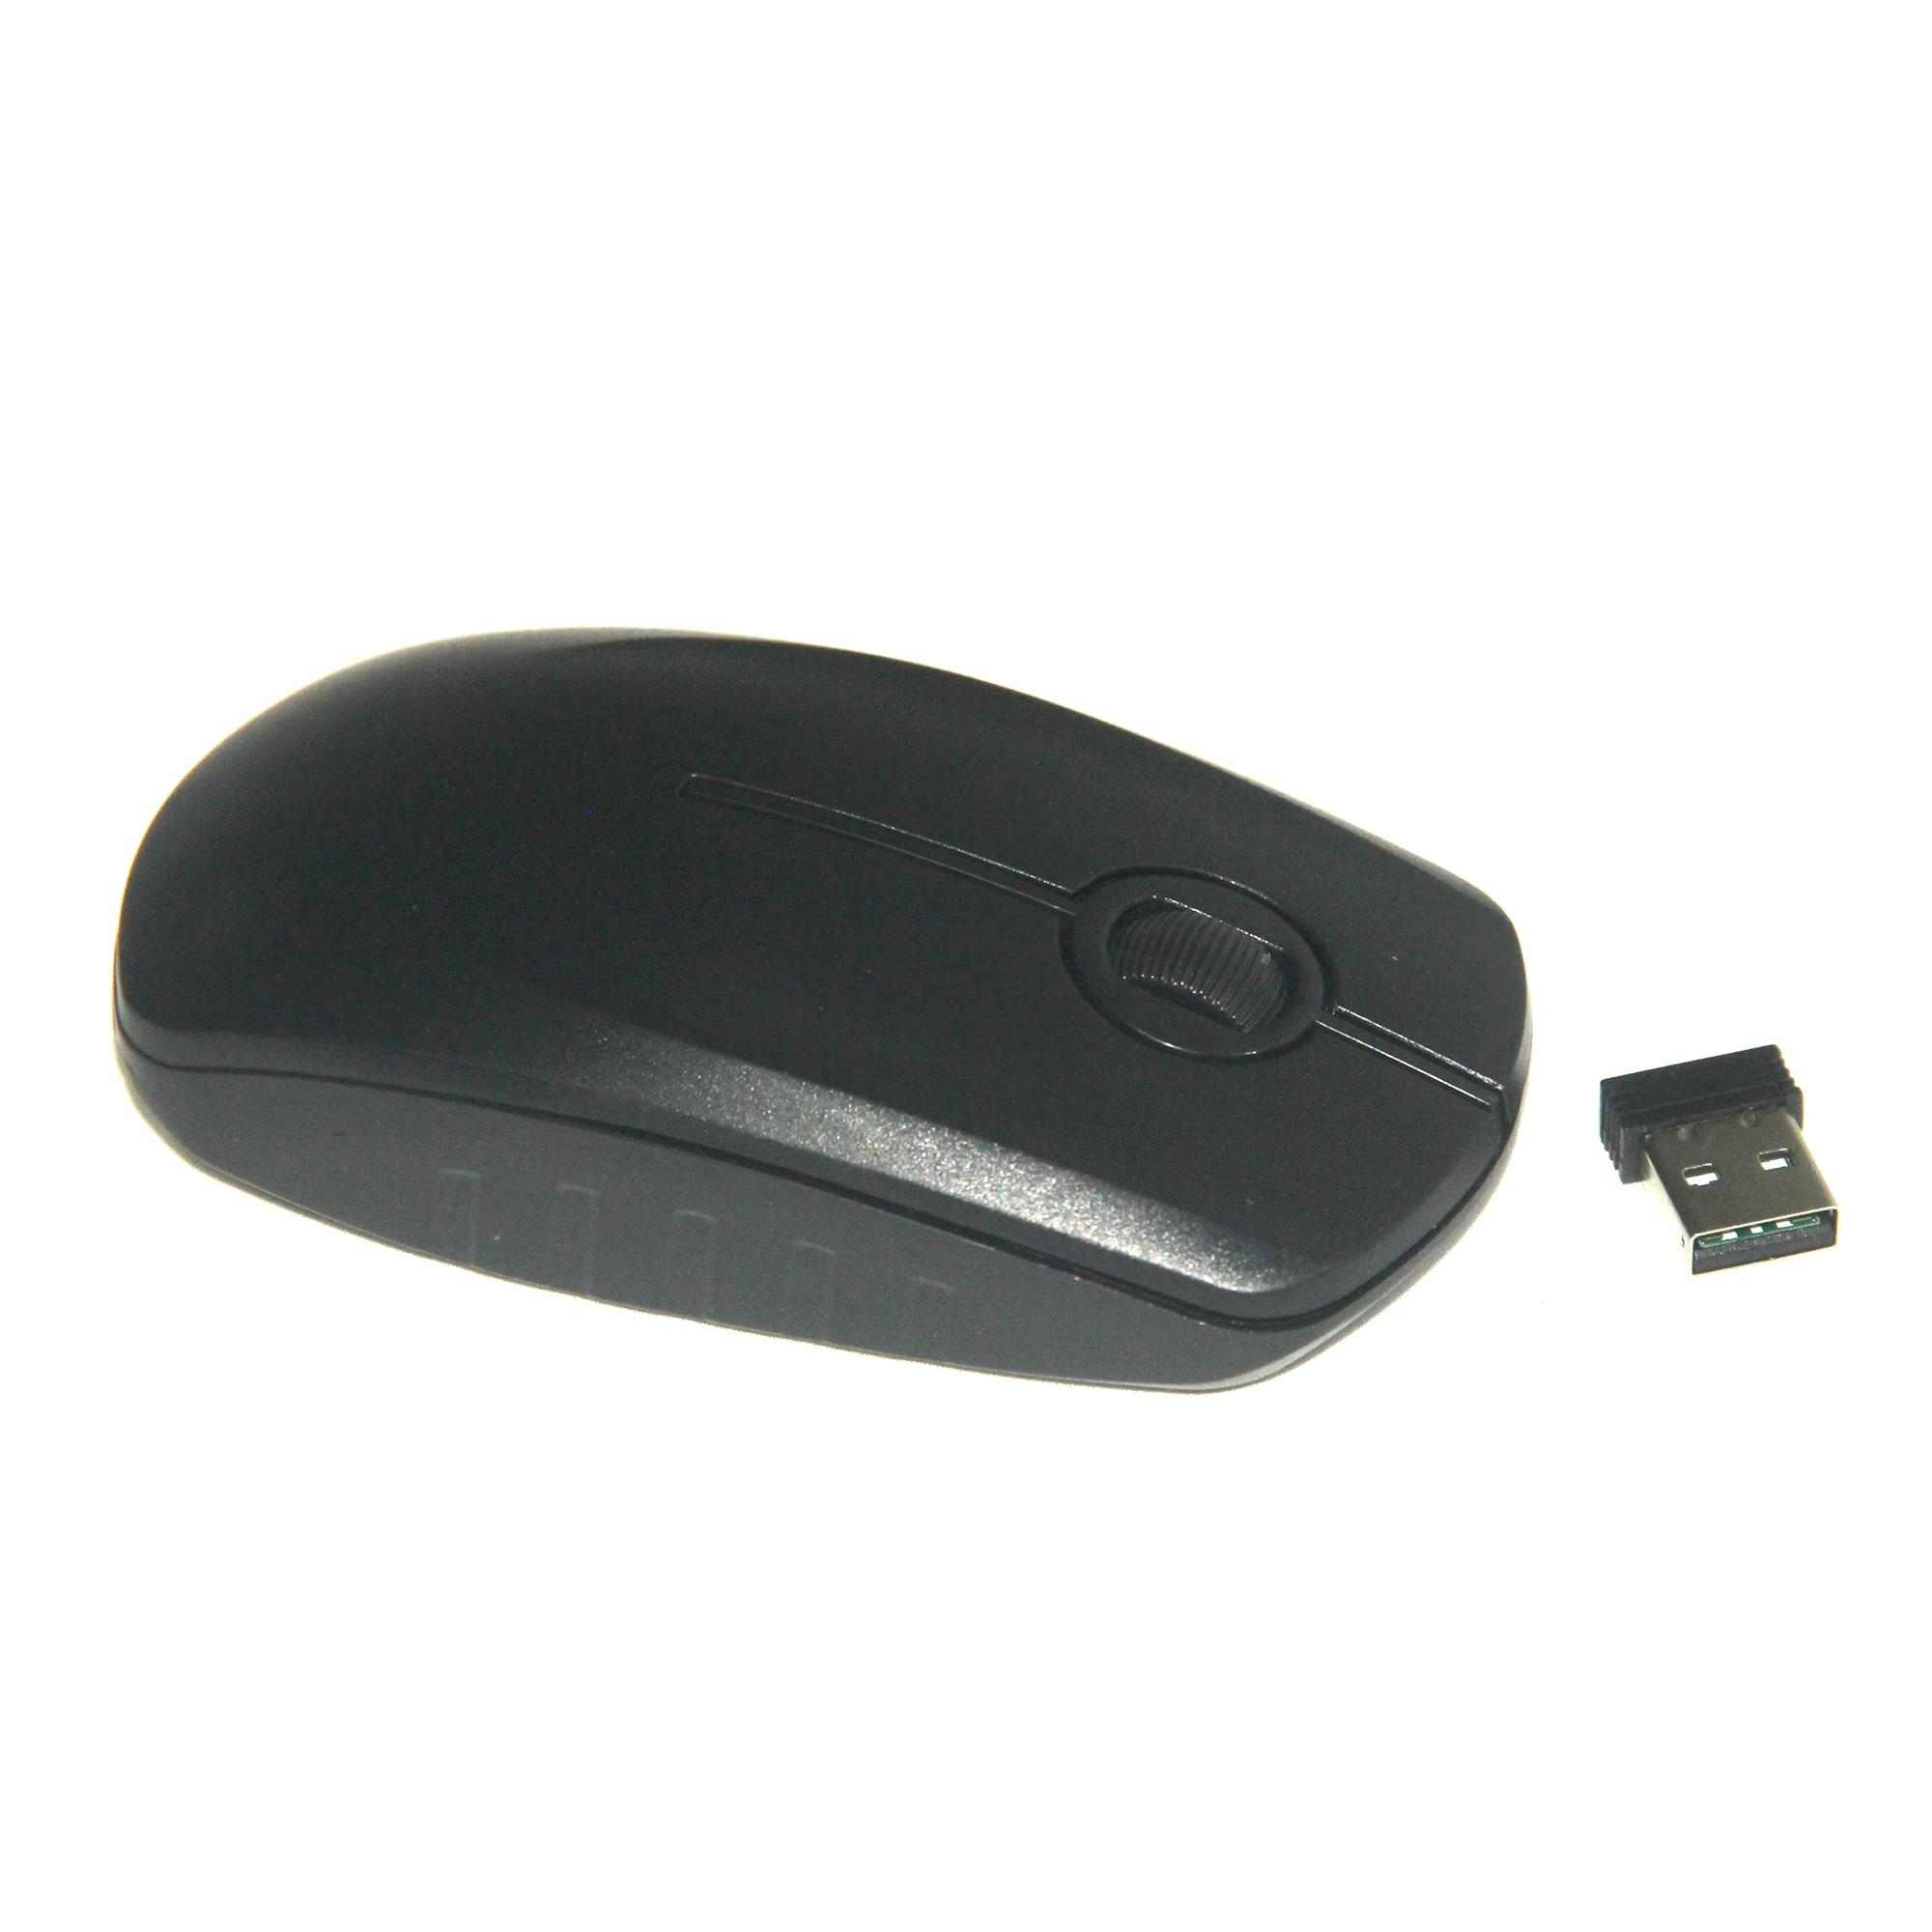 JX Wireless Optical Mouse